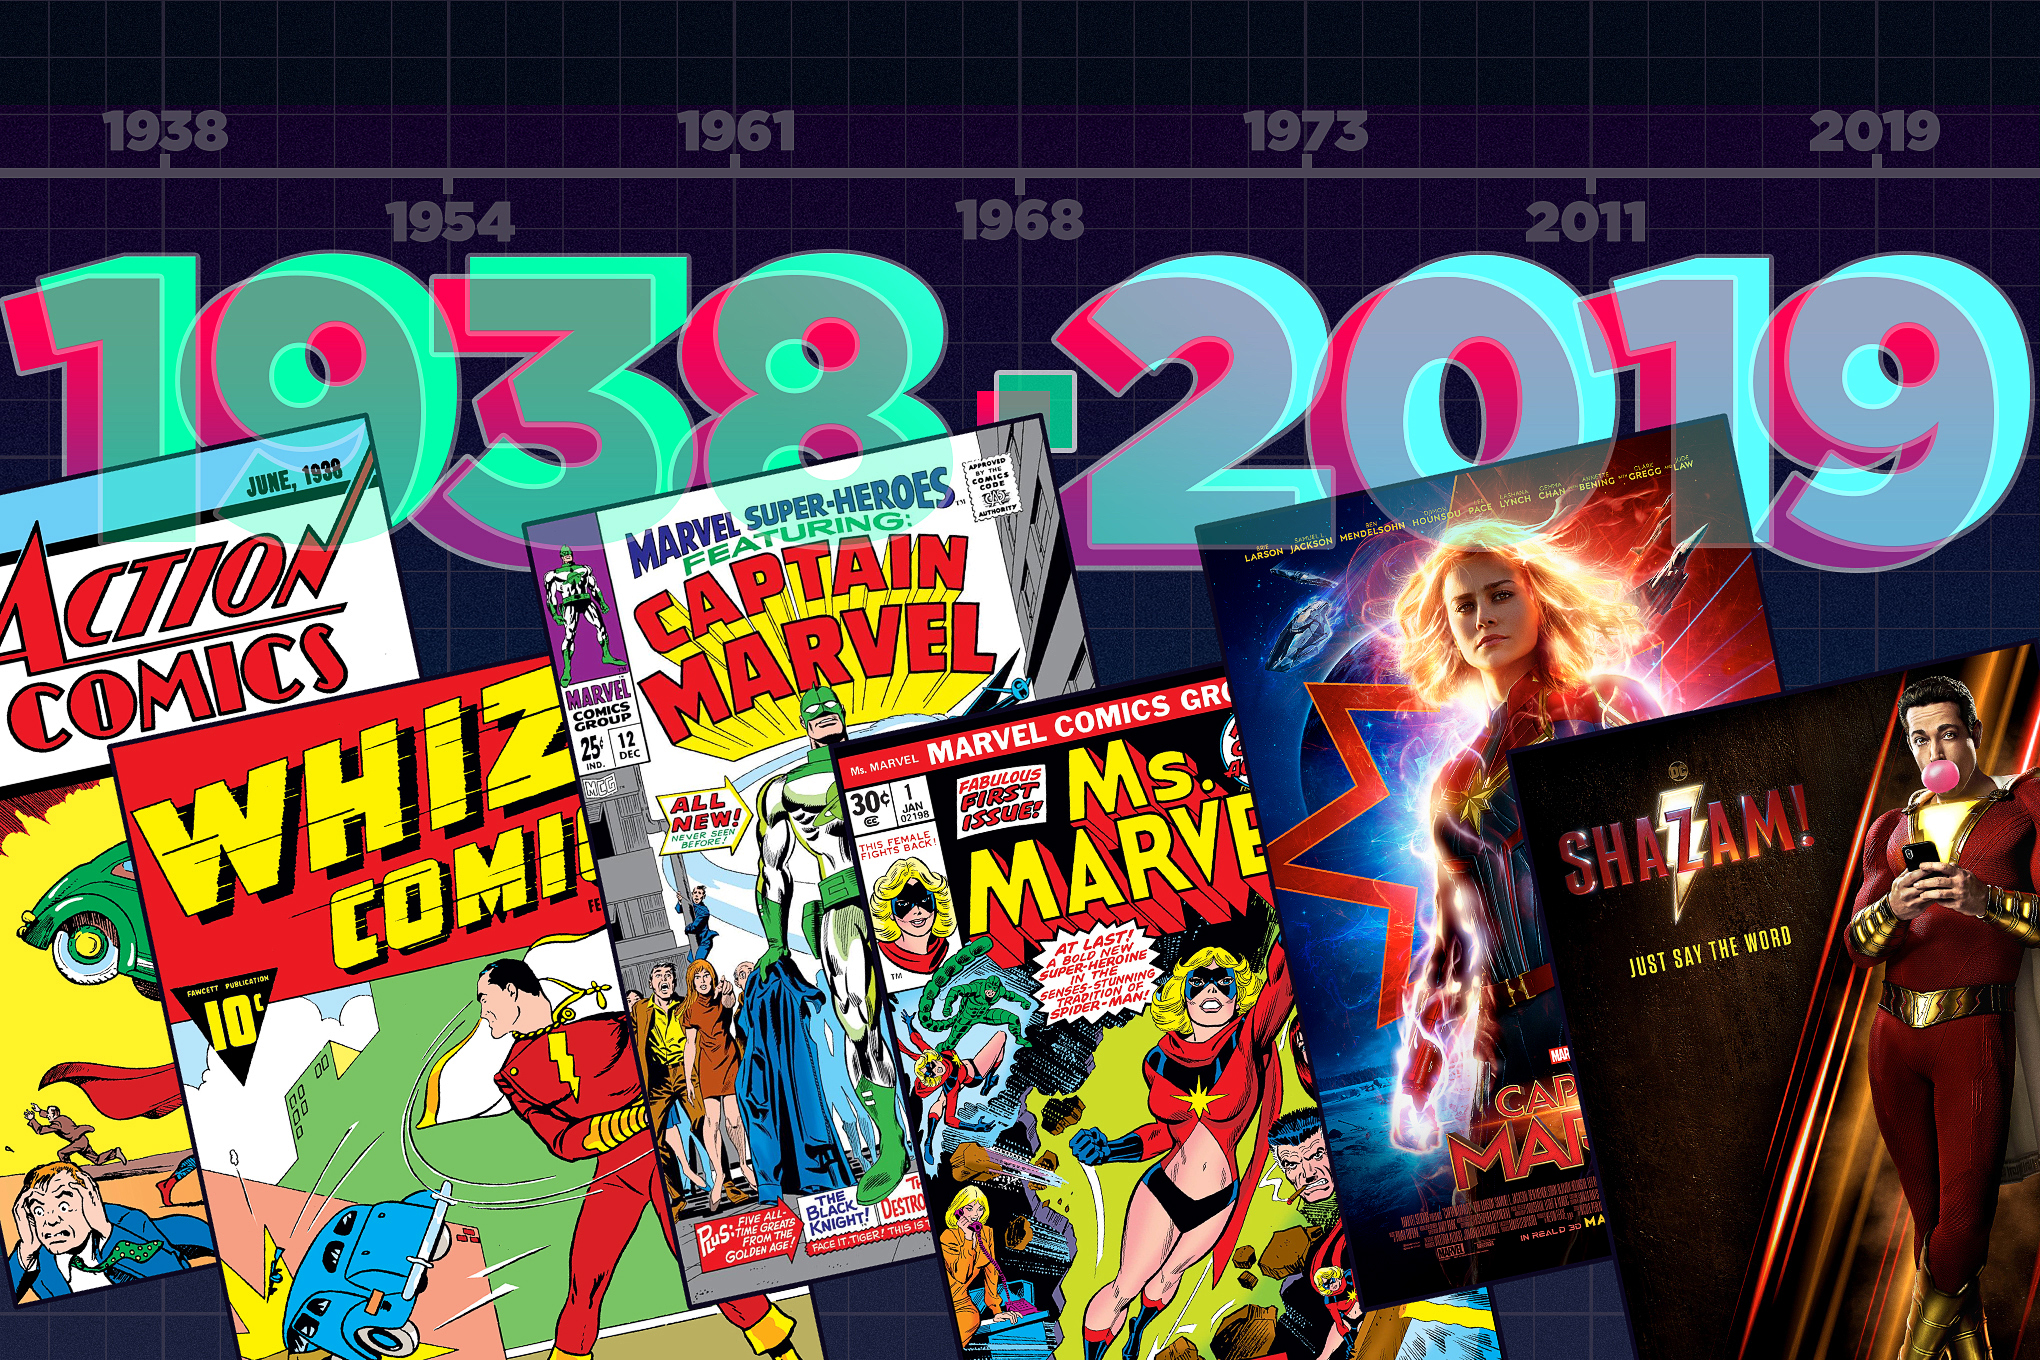 506bd7e32a7 Shazam & Captain Marvel are forever linked. This is the wild story ...